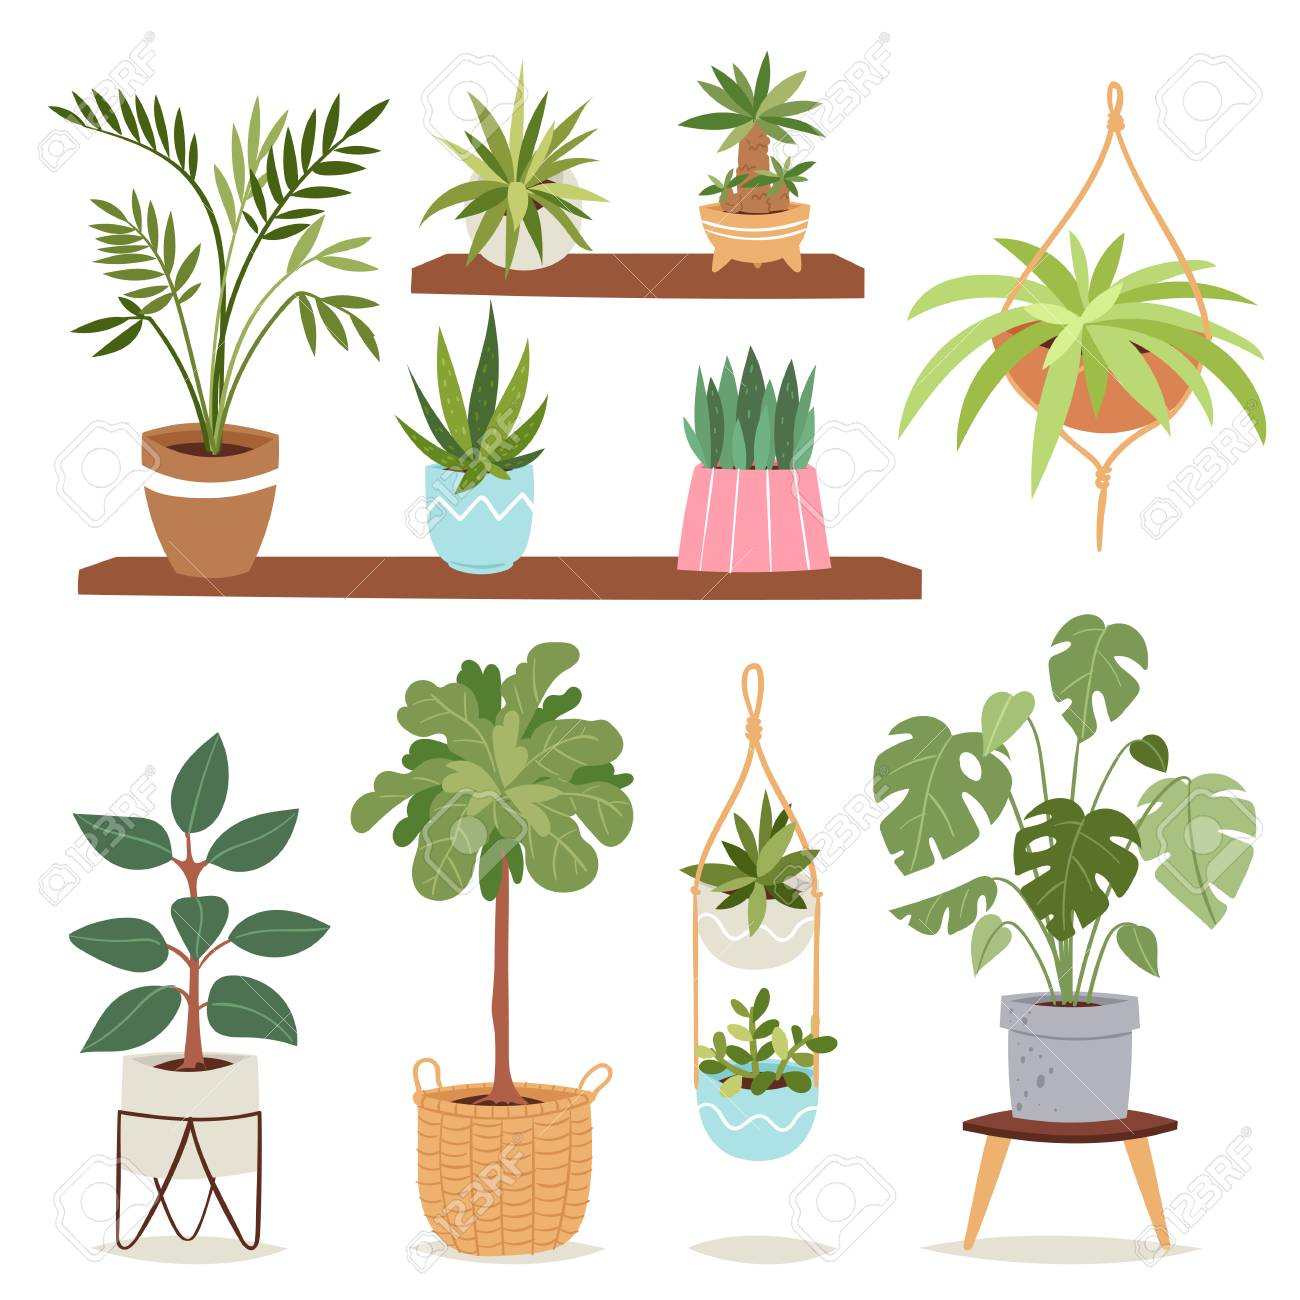 House Indoor Plants And Nature Flowers Interior Decoration Houseplant Royalty Free Cliparts Vectors And Stock Illustration Image 90926293